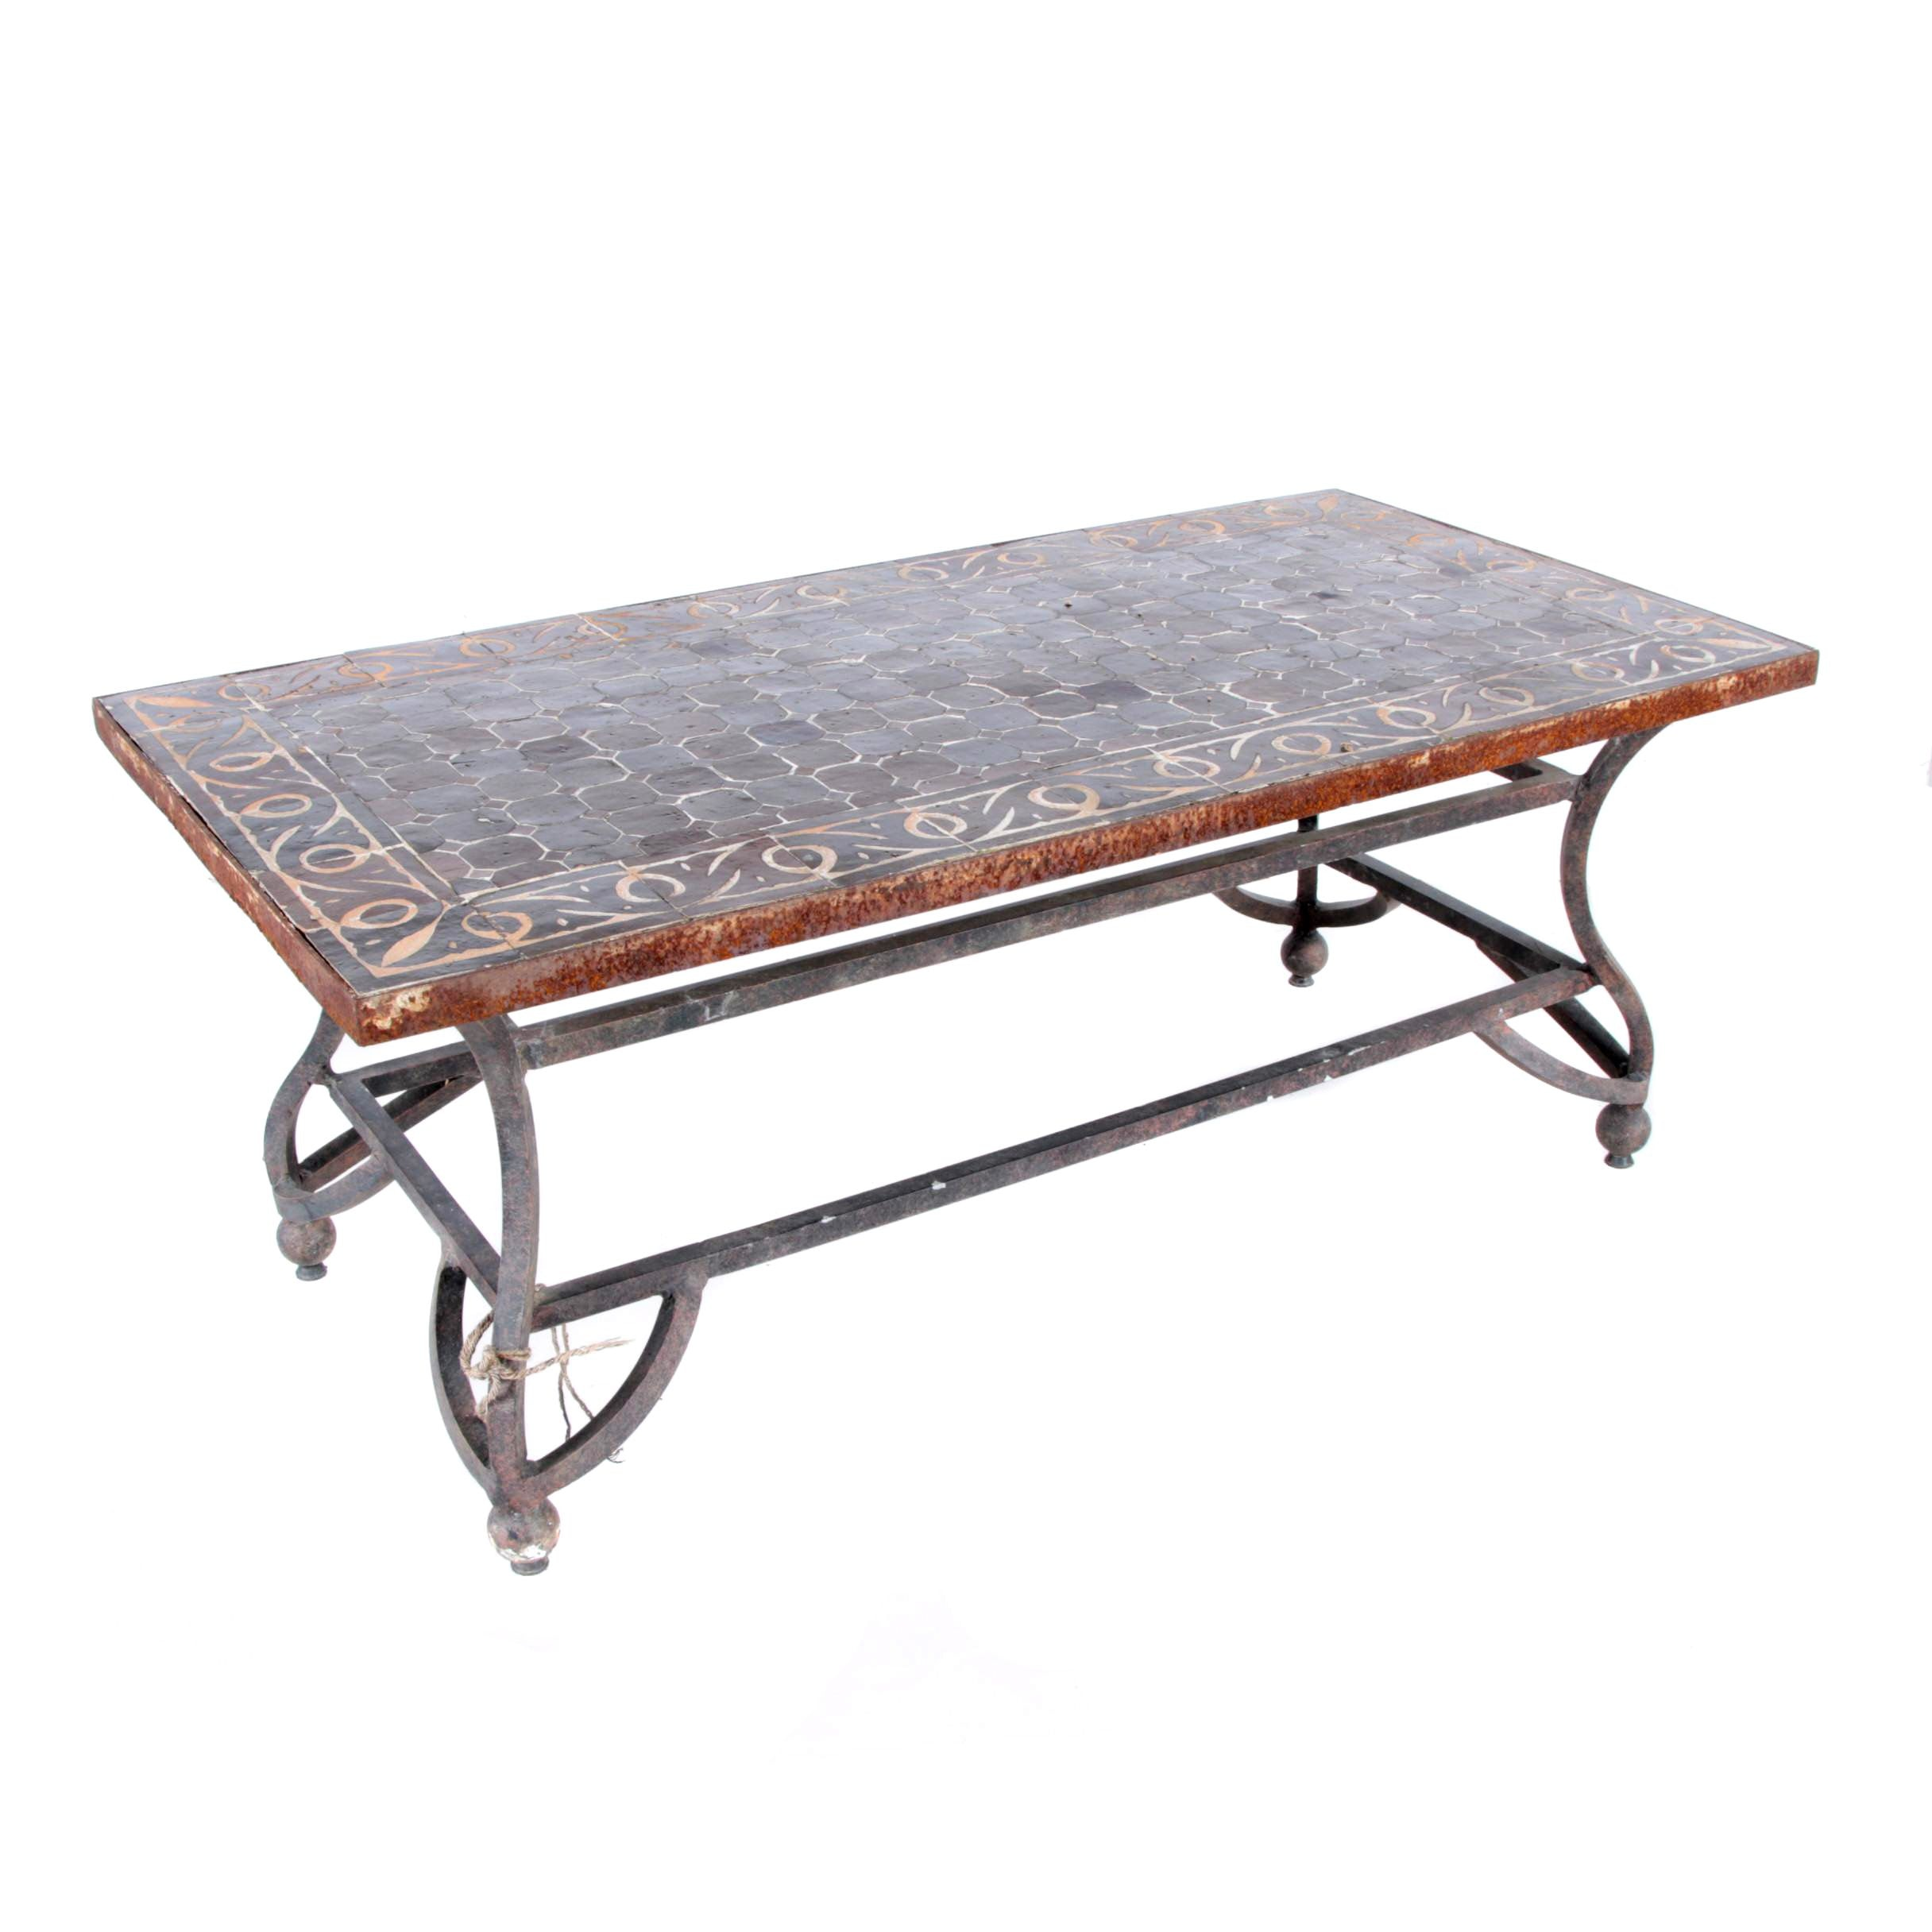 Wrought Iron Patio Table With Ceramic Tile Top Ebth